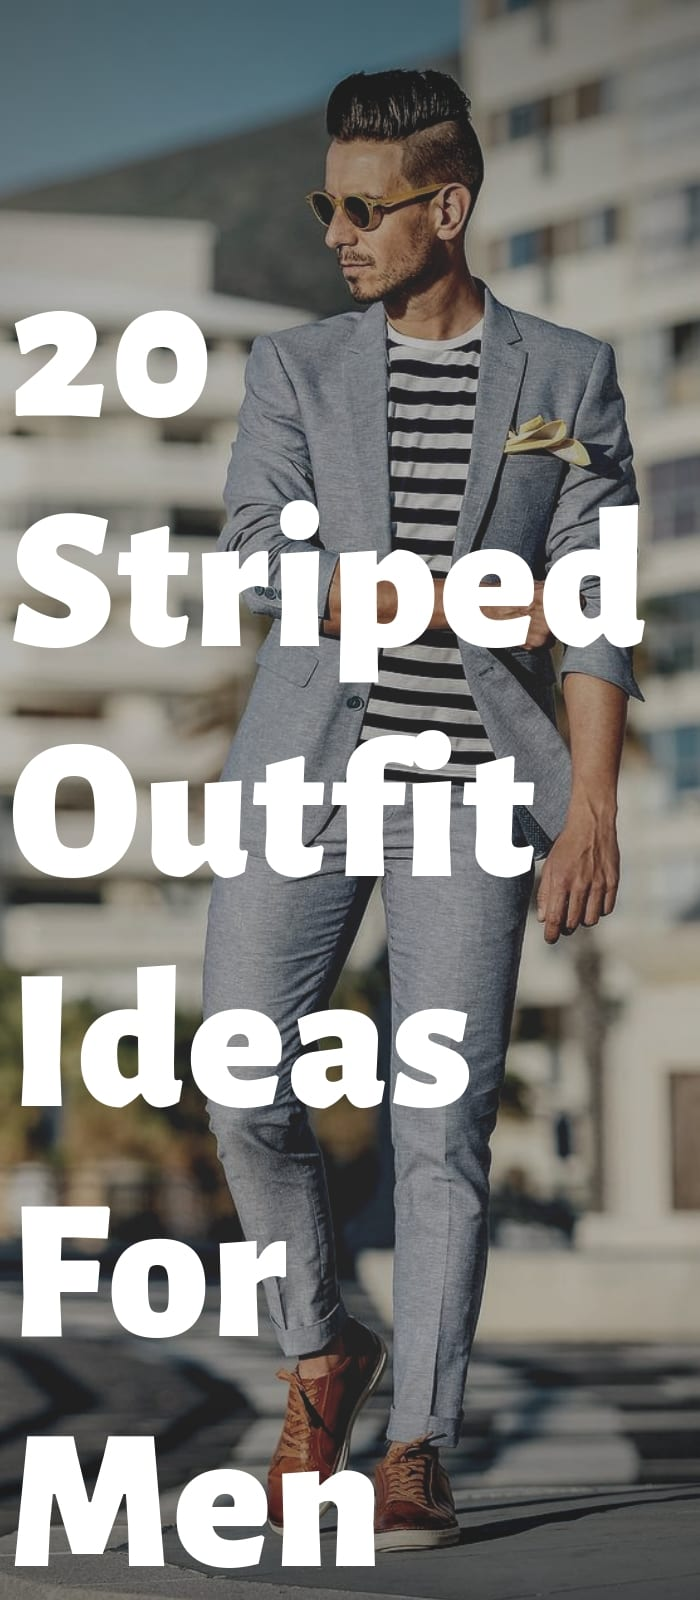 20 Striped Outfit Ideas For Men!